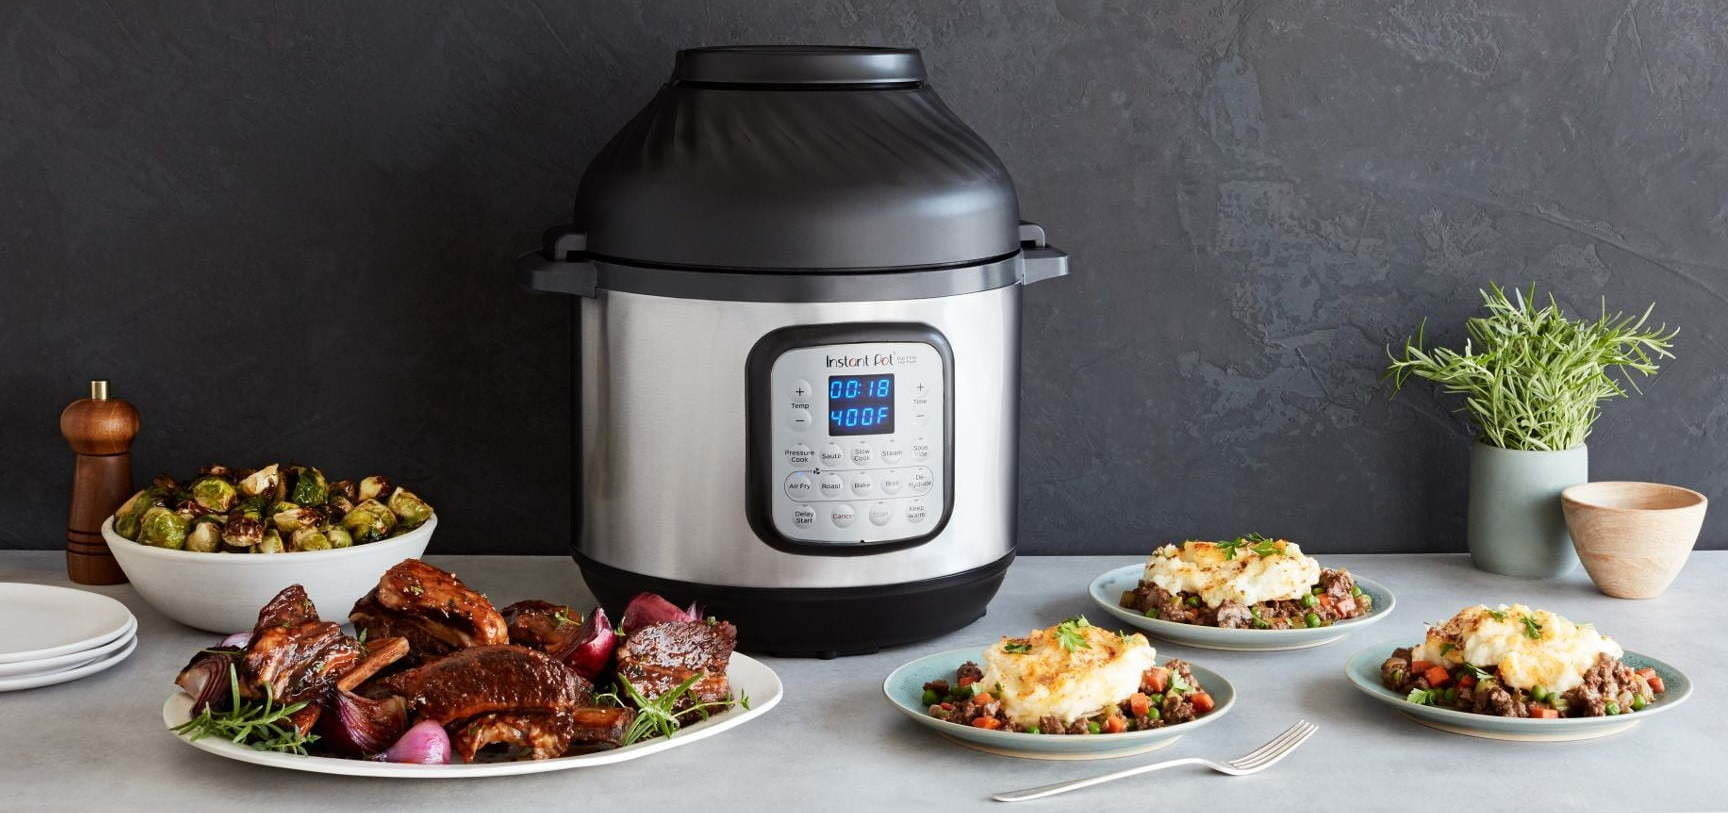 How To Use An Instant Pot As A Slow Cooker 1